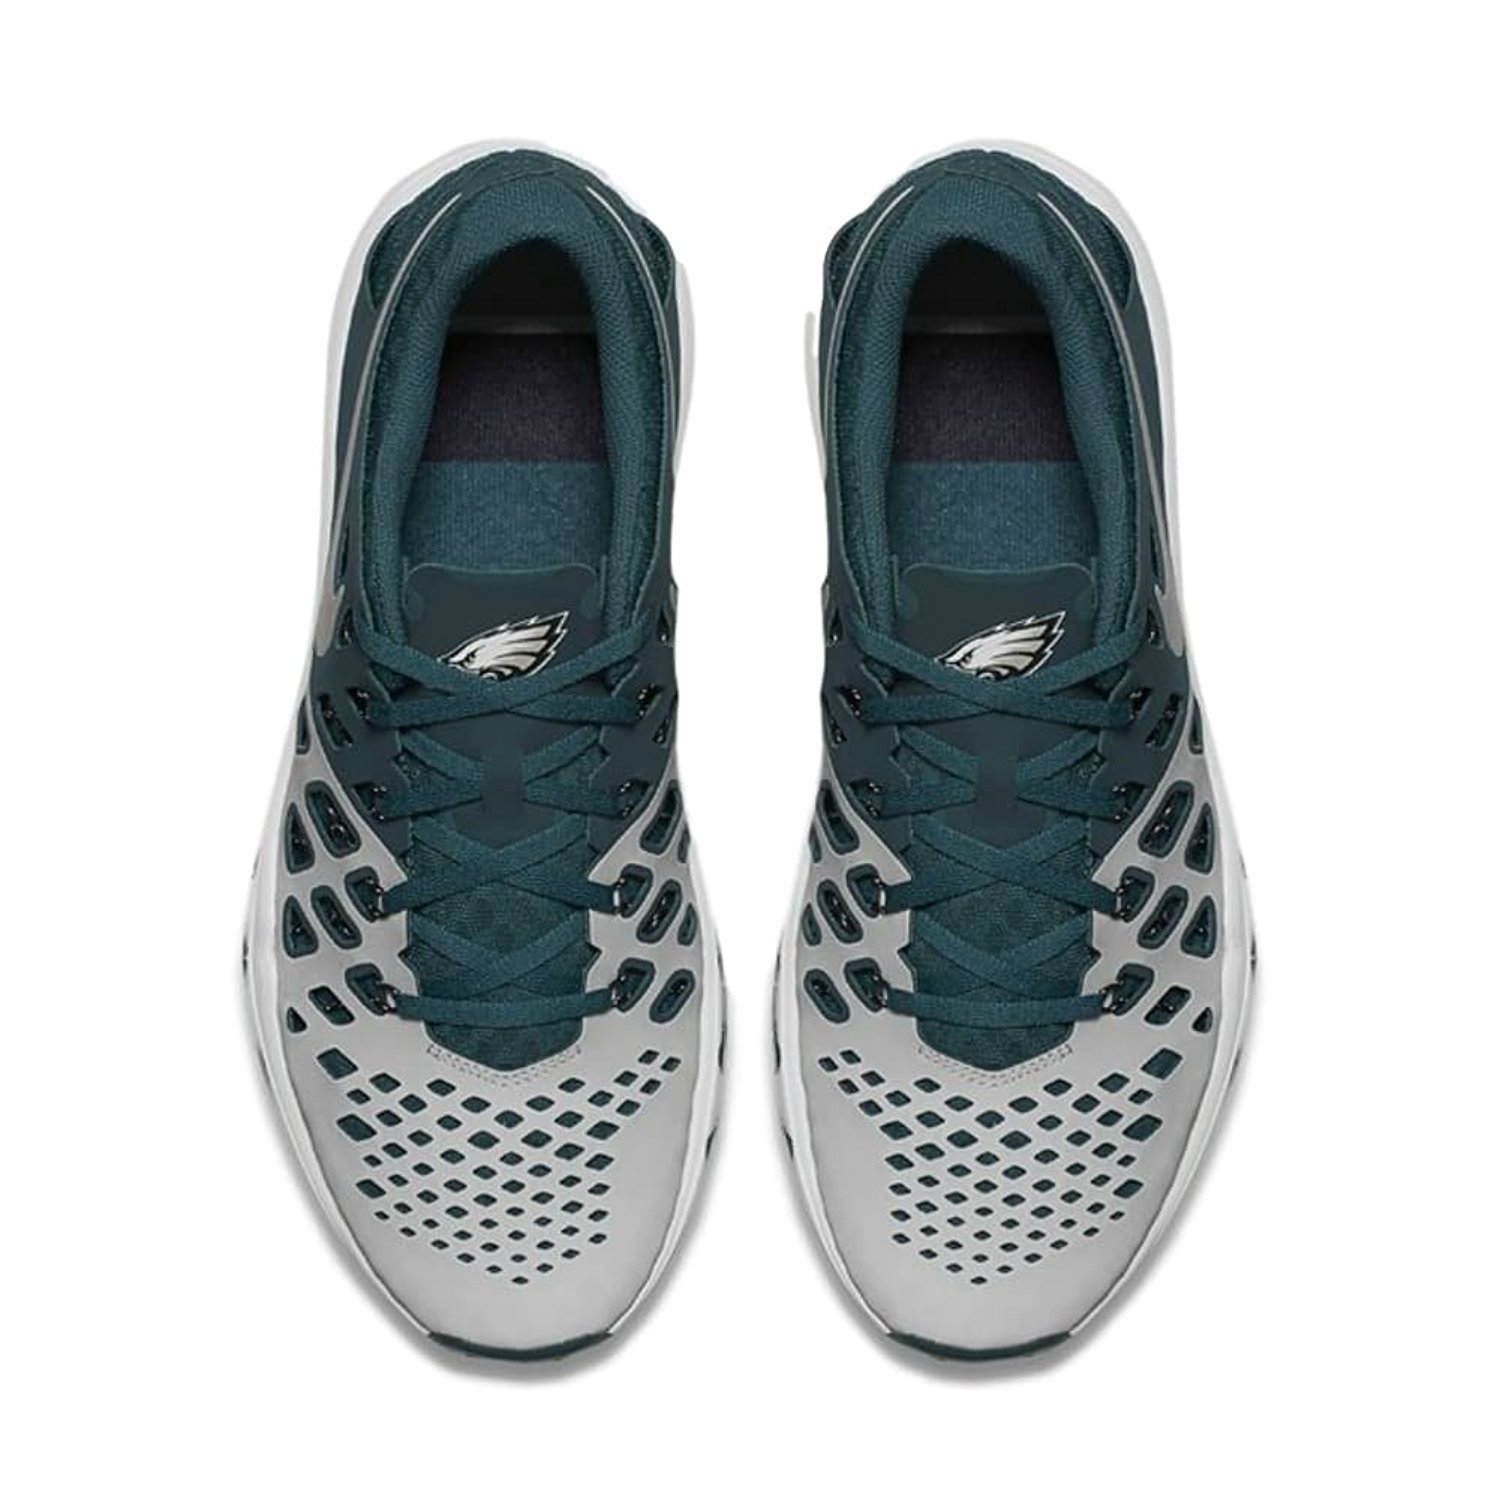 NIKE Mens Train Speed 4 amp NFL Training Sneaker, Argent Moyer/Medium Silver:  Amazon.co.uk: Shoes & Bags